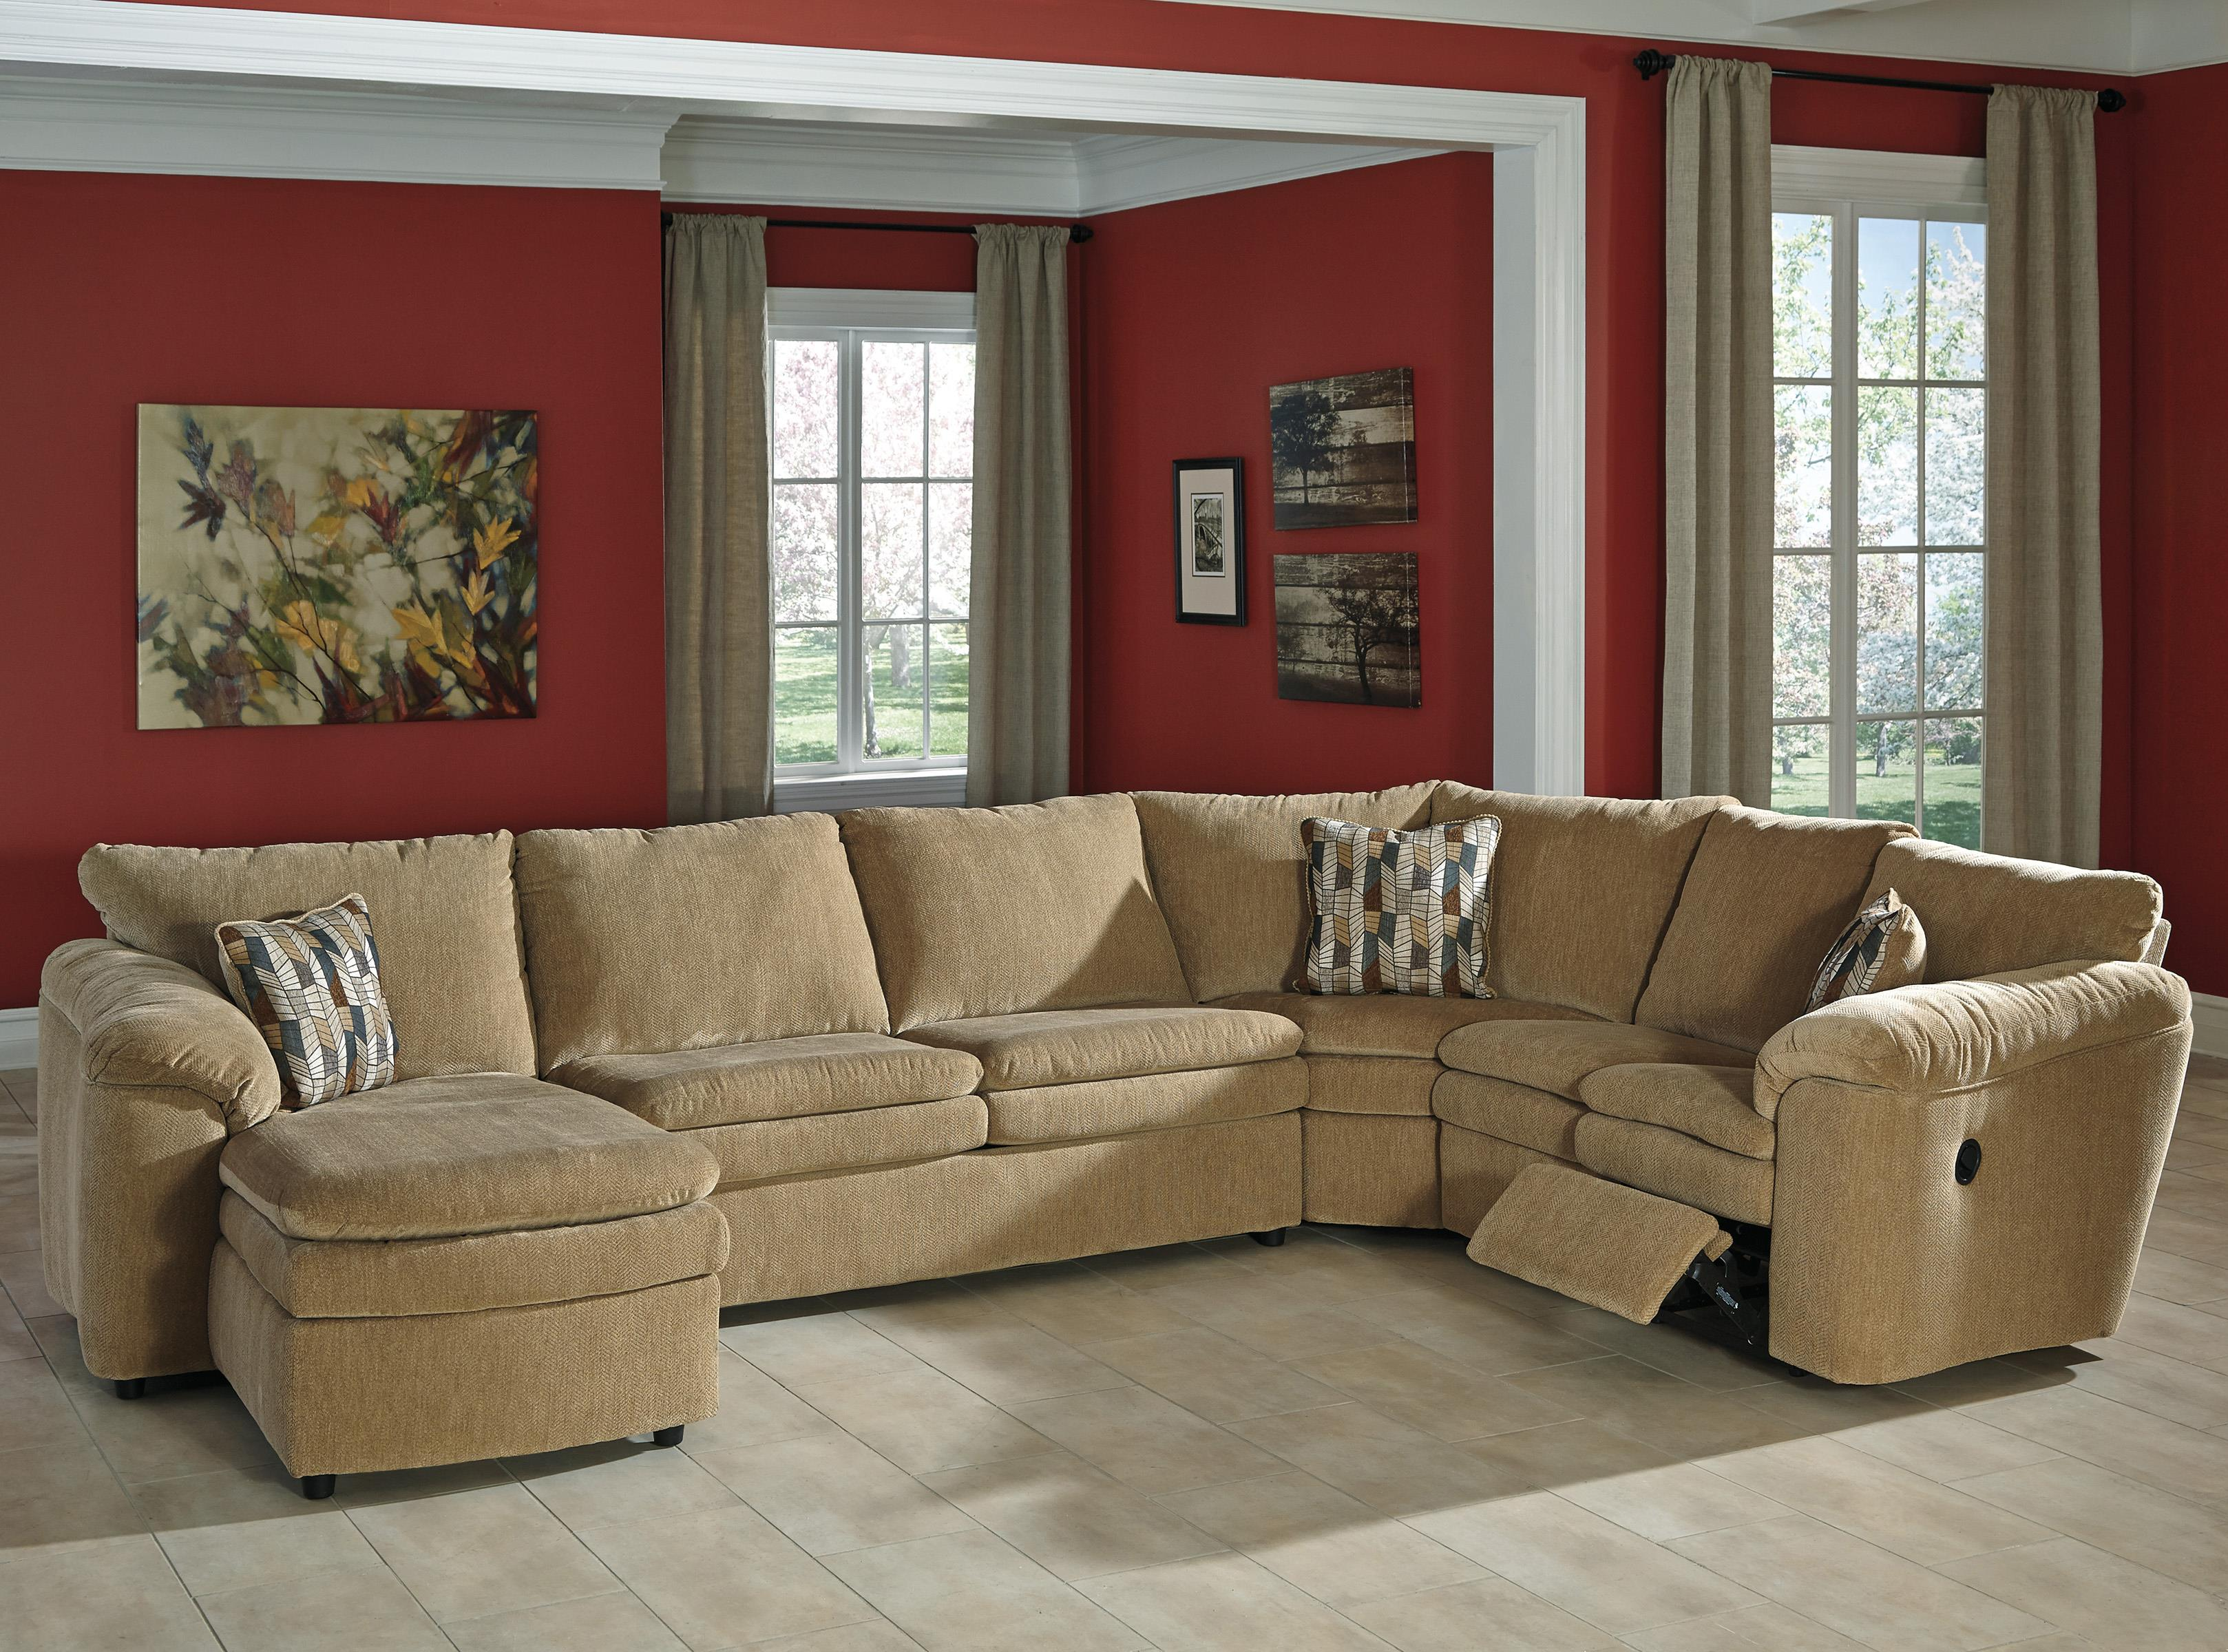 Signature Design by Ashley Coats 4-Piece Reclining Sectional - Item Number: 4410016+34+77+85